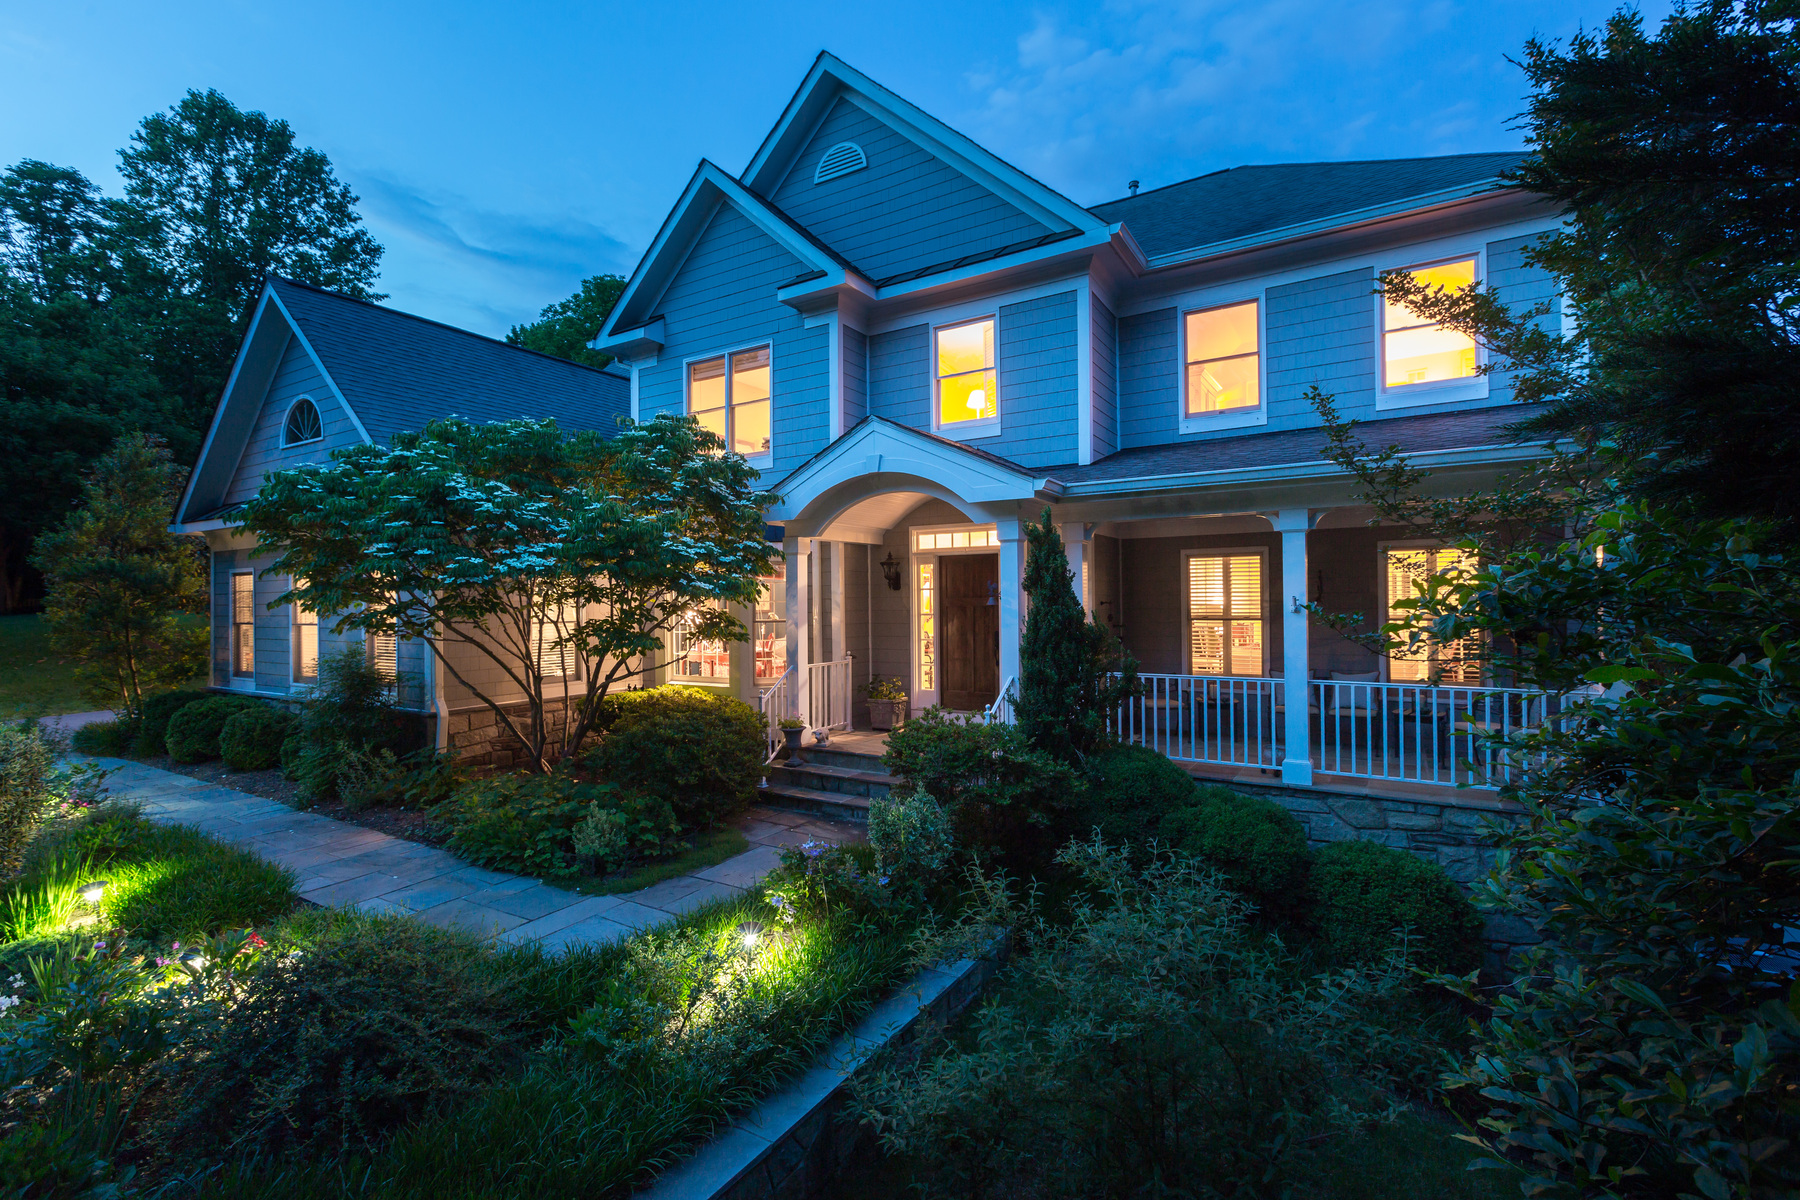 Single Family Home for Sale at McLean McLean, Virginia, 22101 United States